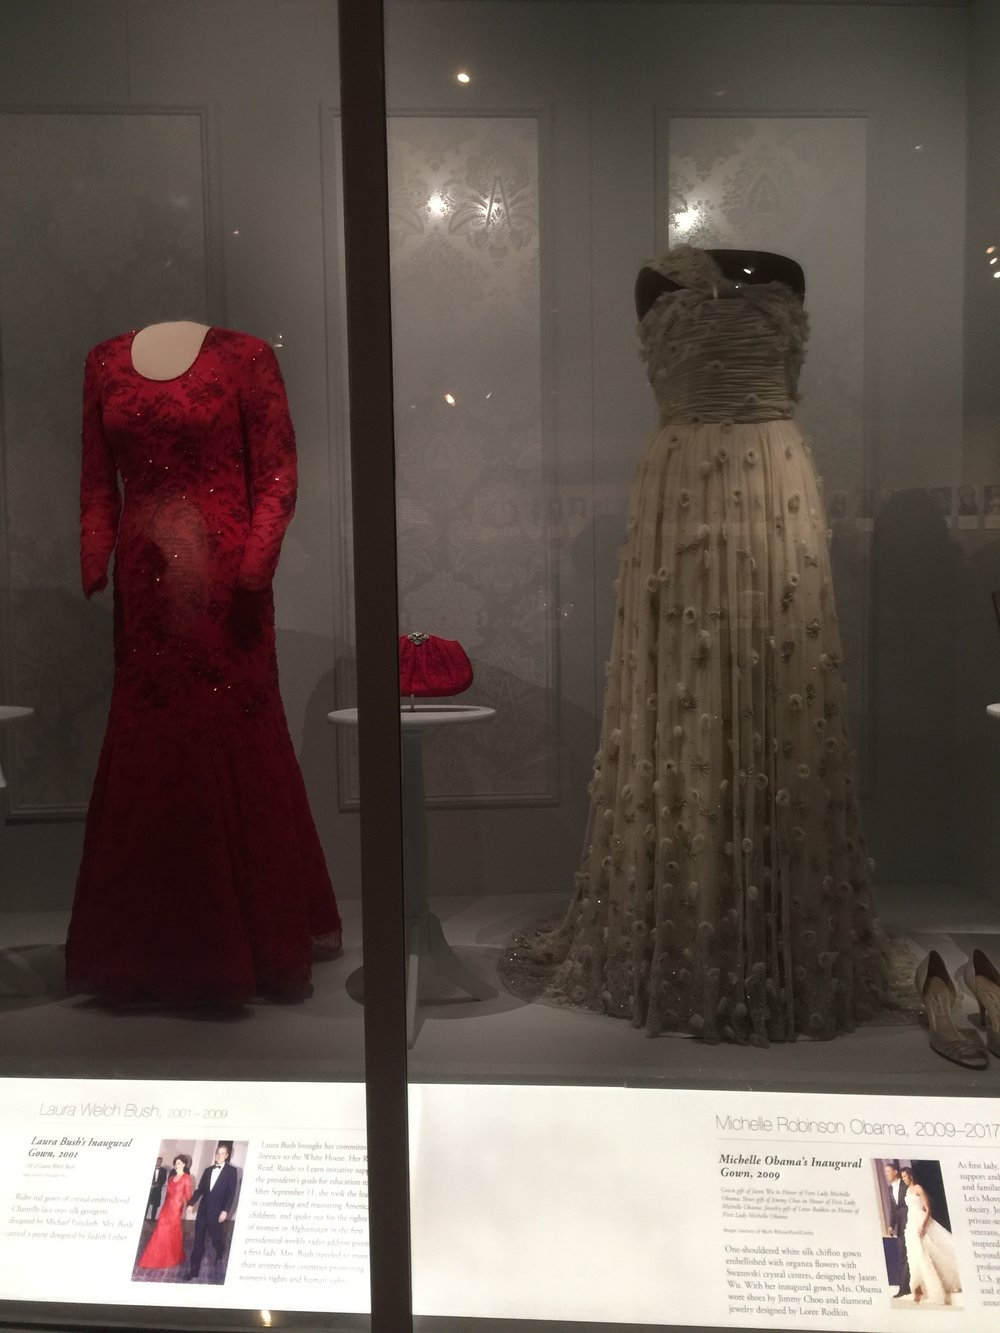 The dresses that the First Ladies have worn. - Washington, DC; Smithsonian Museum, Fall 2018